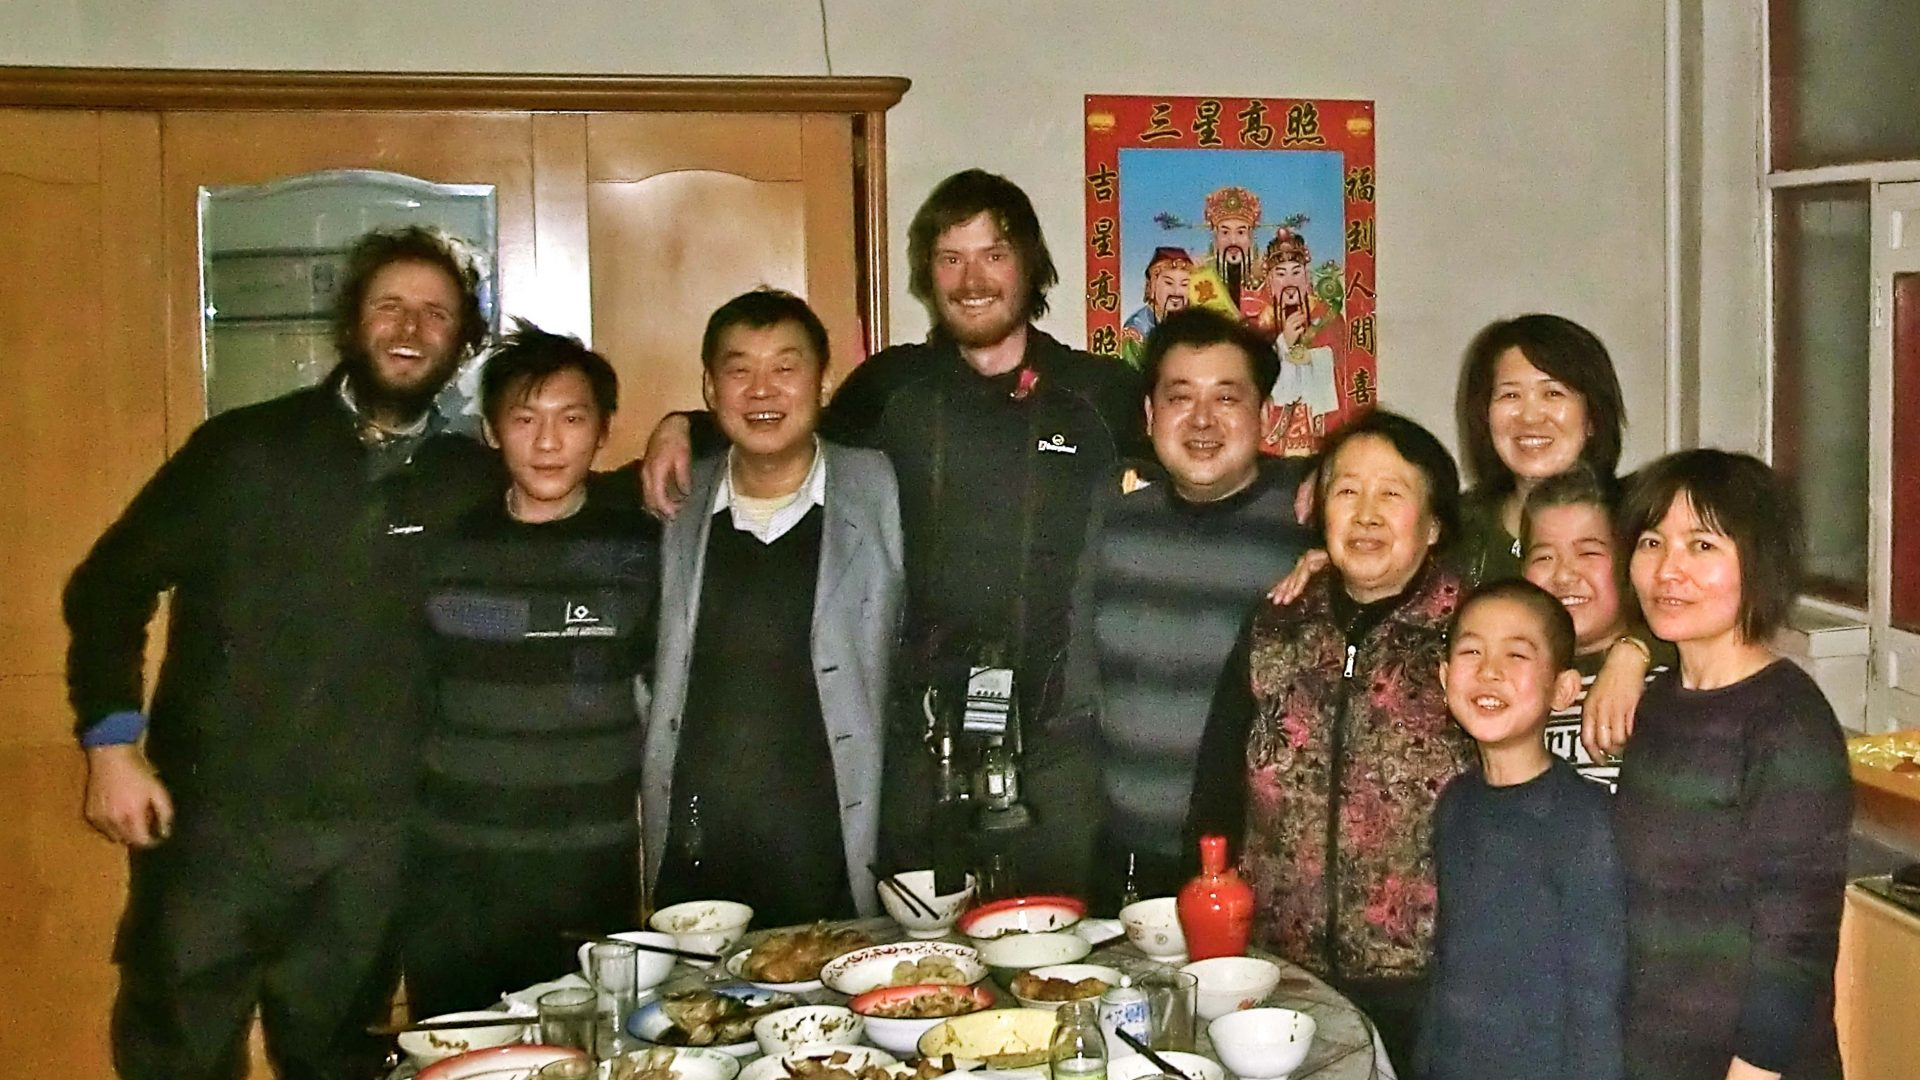 Leon accepted an invitation to a Chinese New Year family party in China.